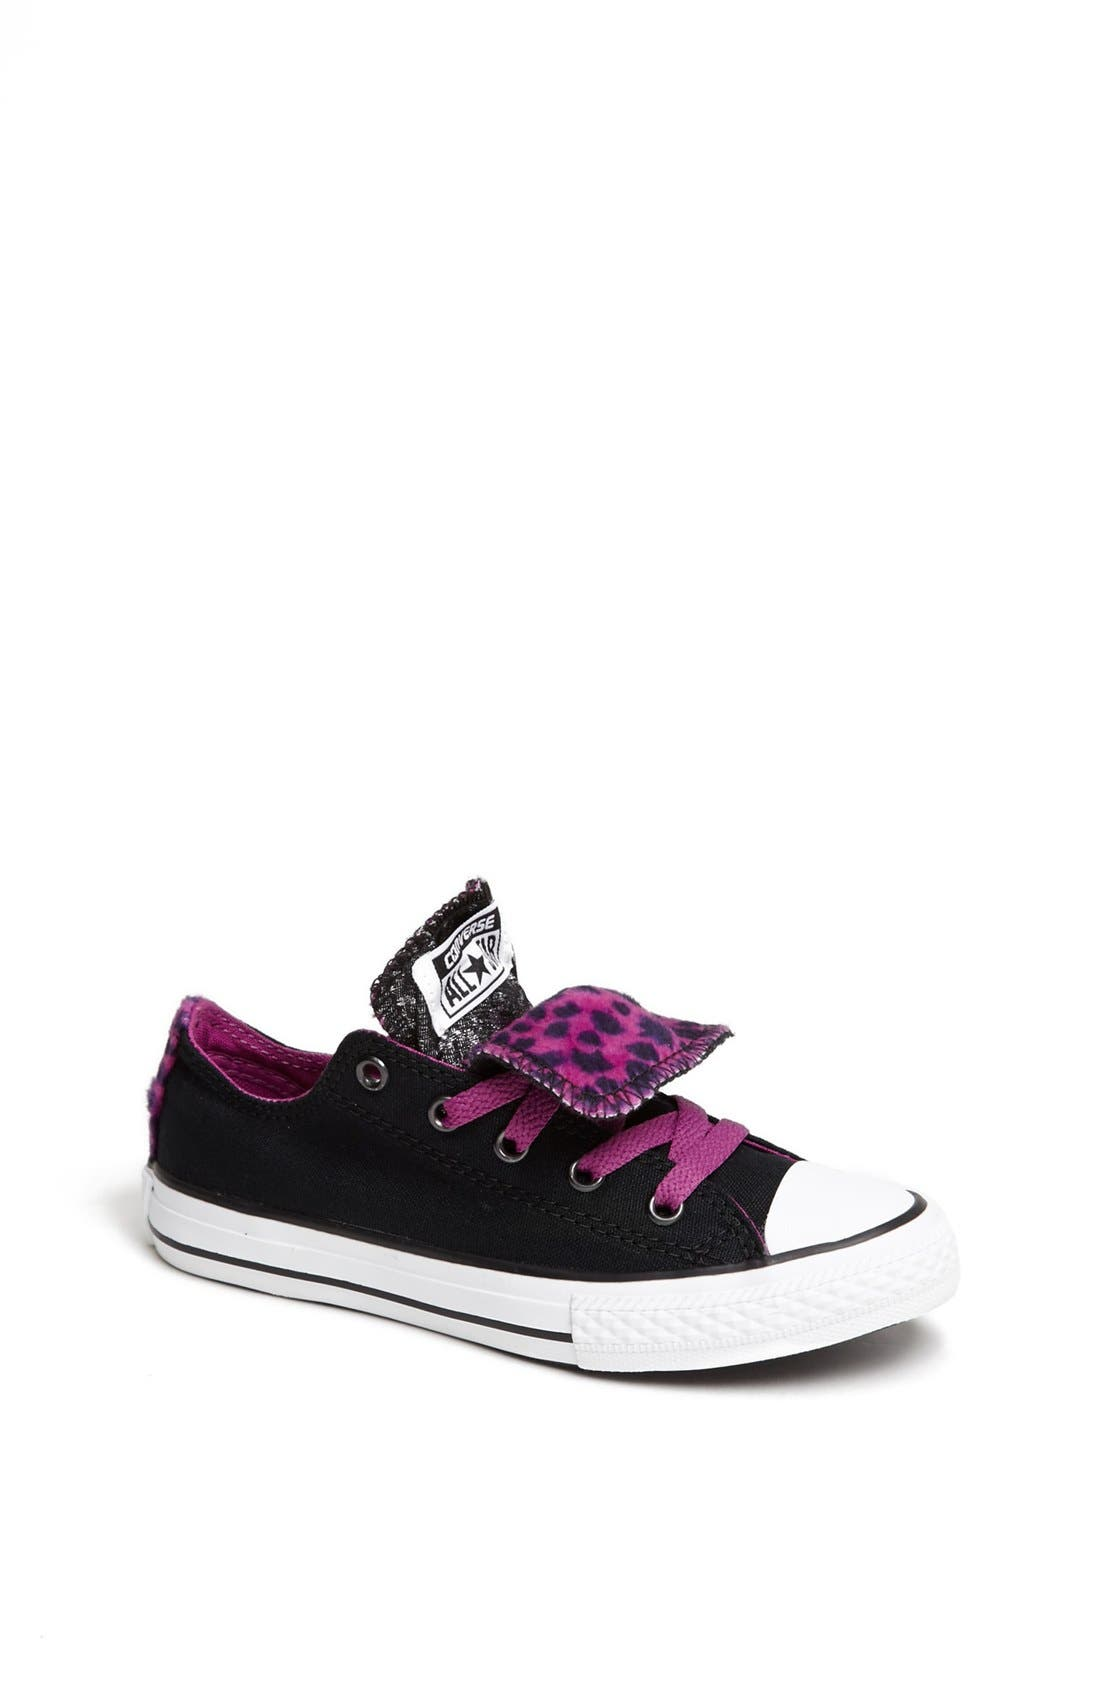 Main Image - Converse Chuck Taylor® All Star® Double Tongue Sneaker (Toddler, Little Kid & Big Kid)